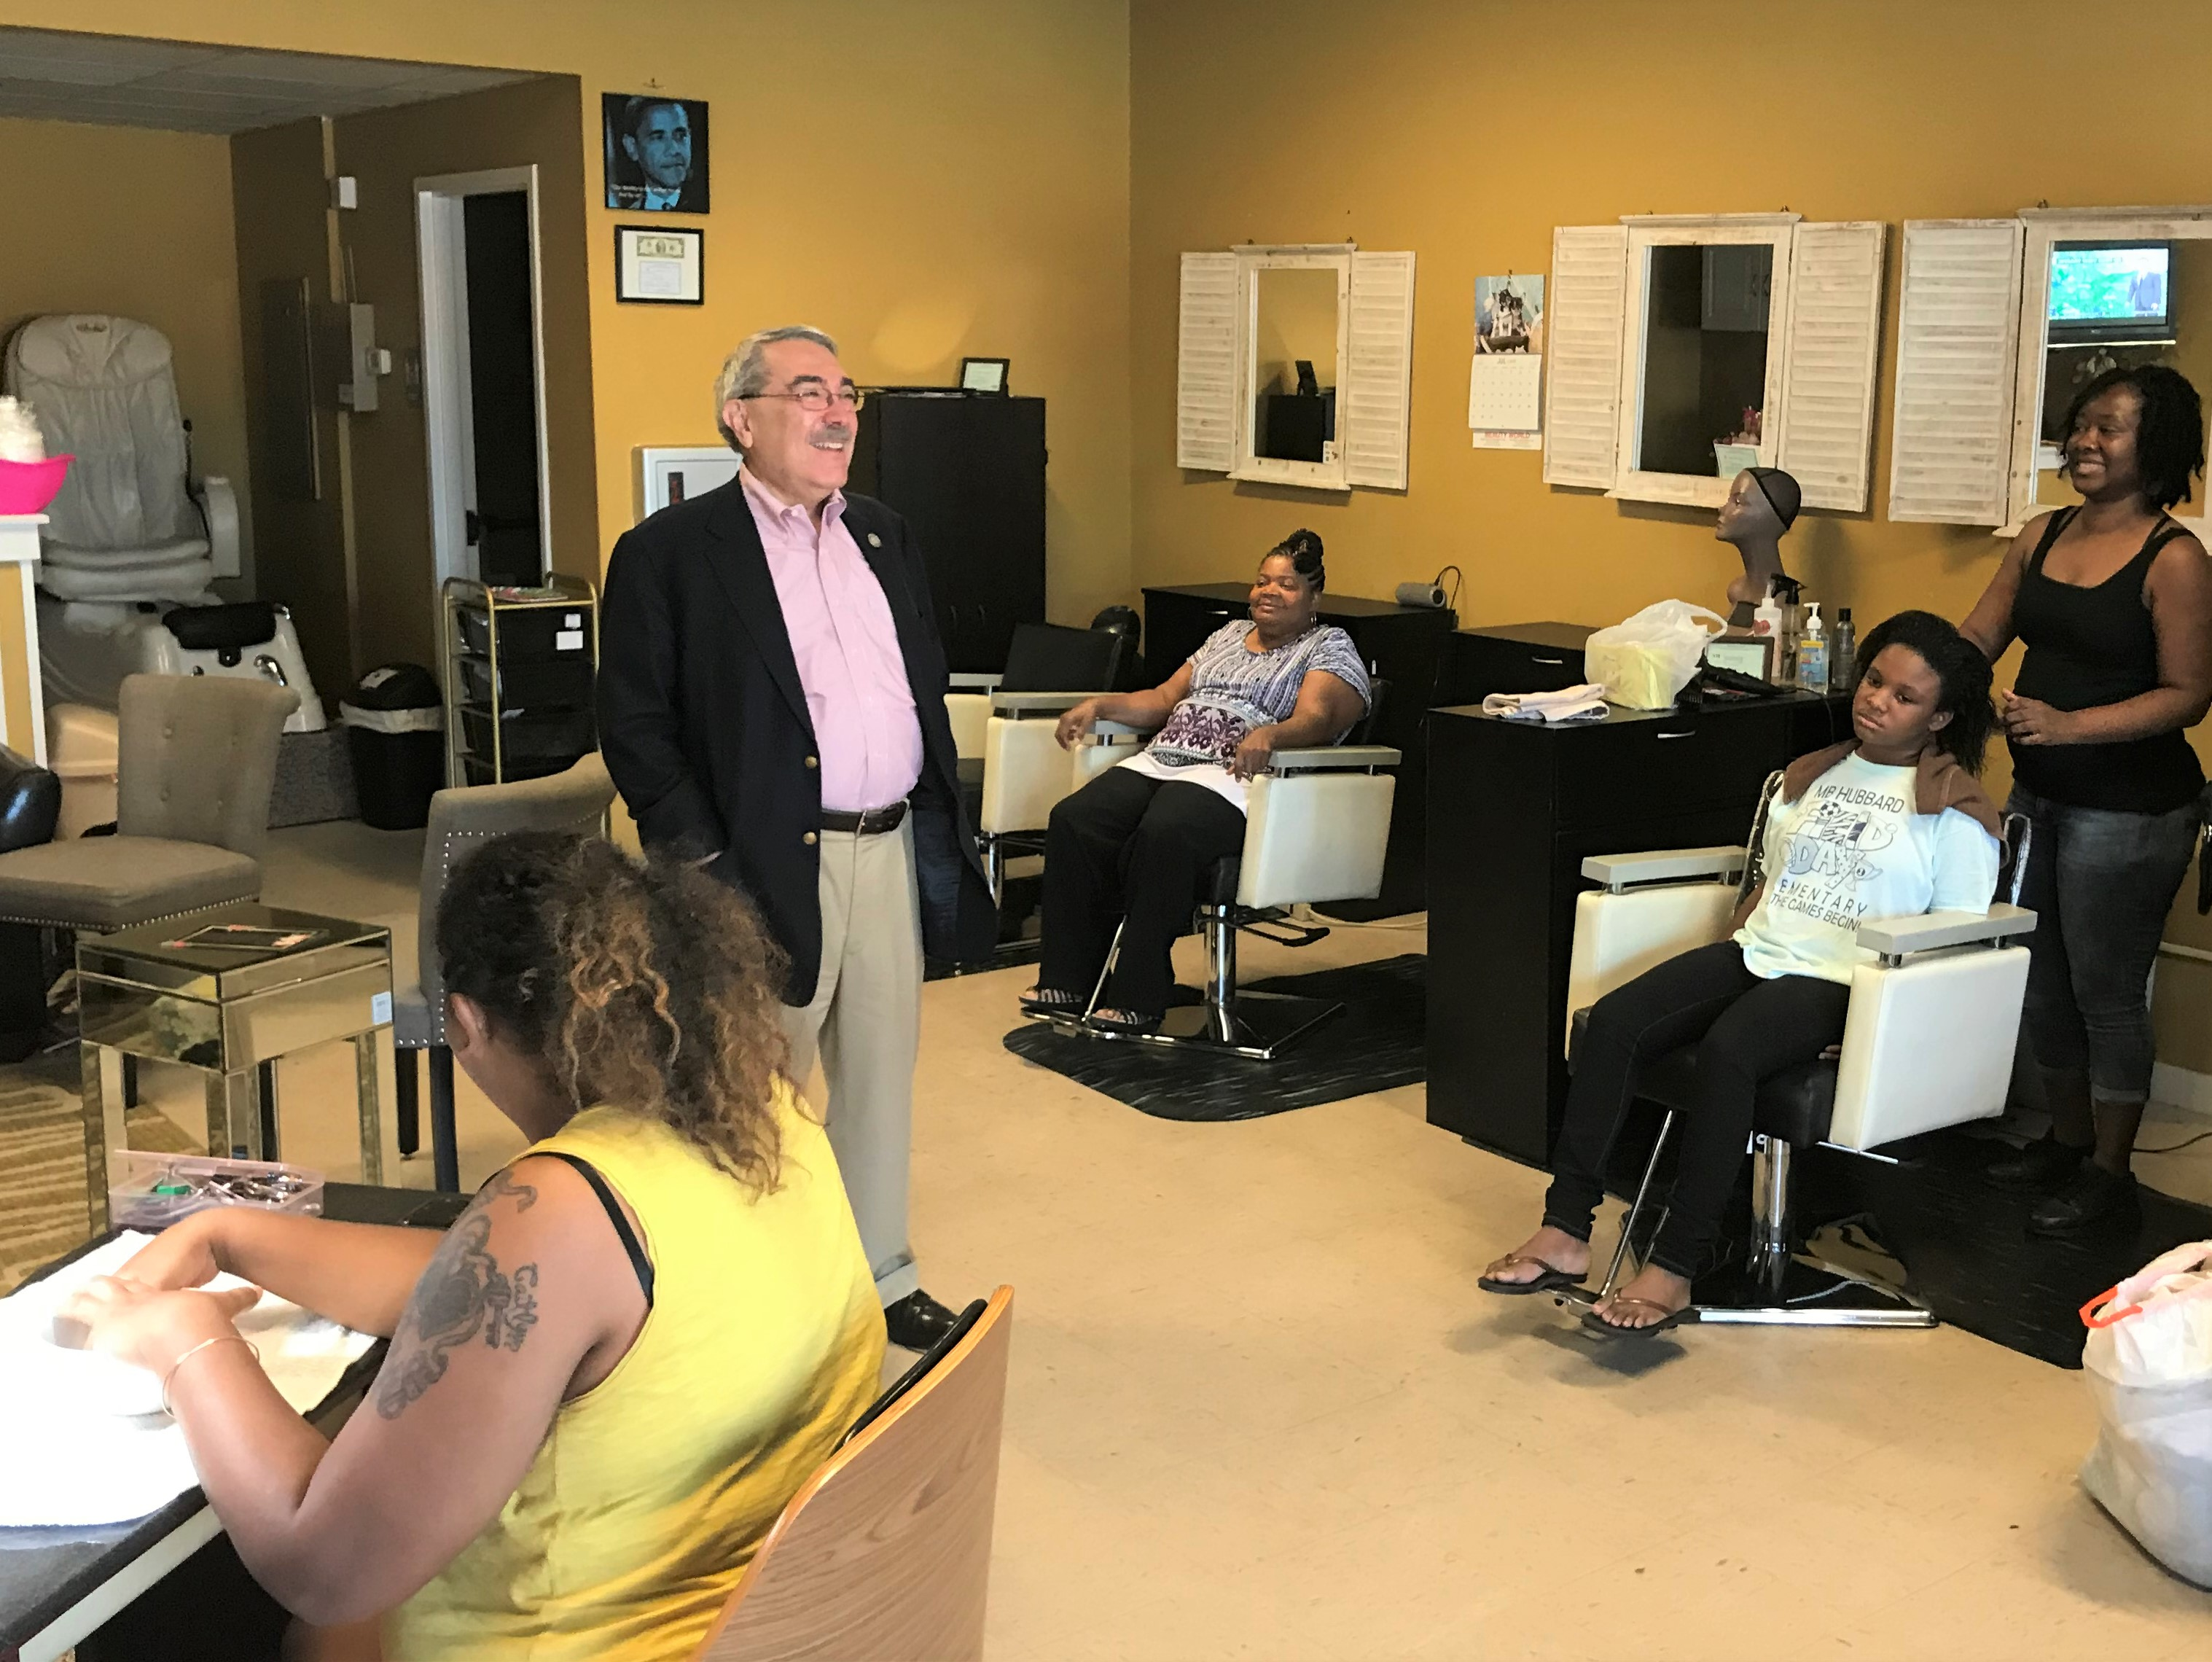 Congressman Butterfield Speaks with Employees and Residents at Nancy's Creation Hair Salon in Rocky Mount